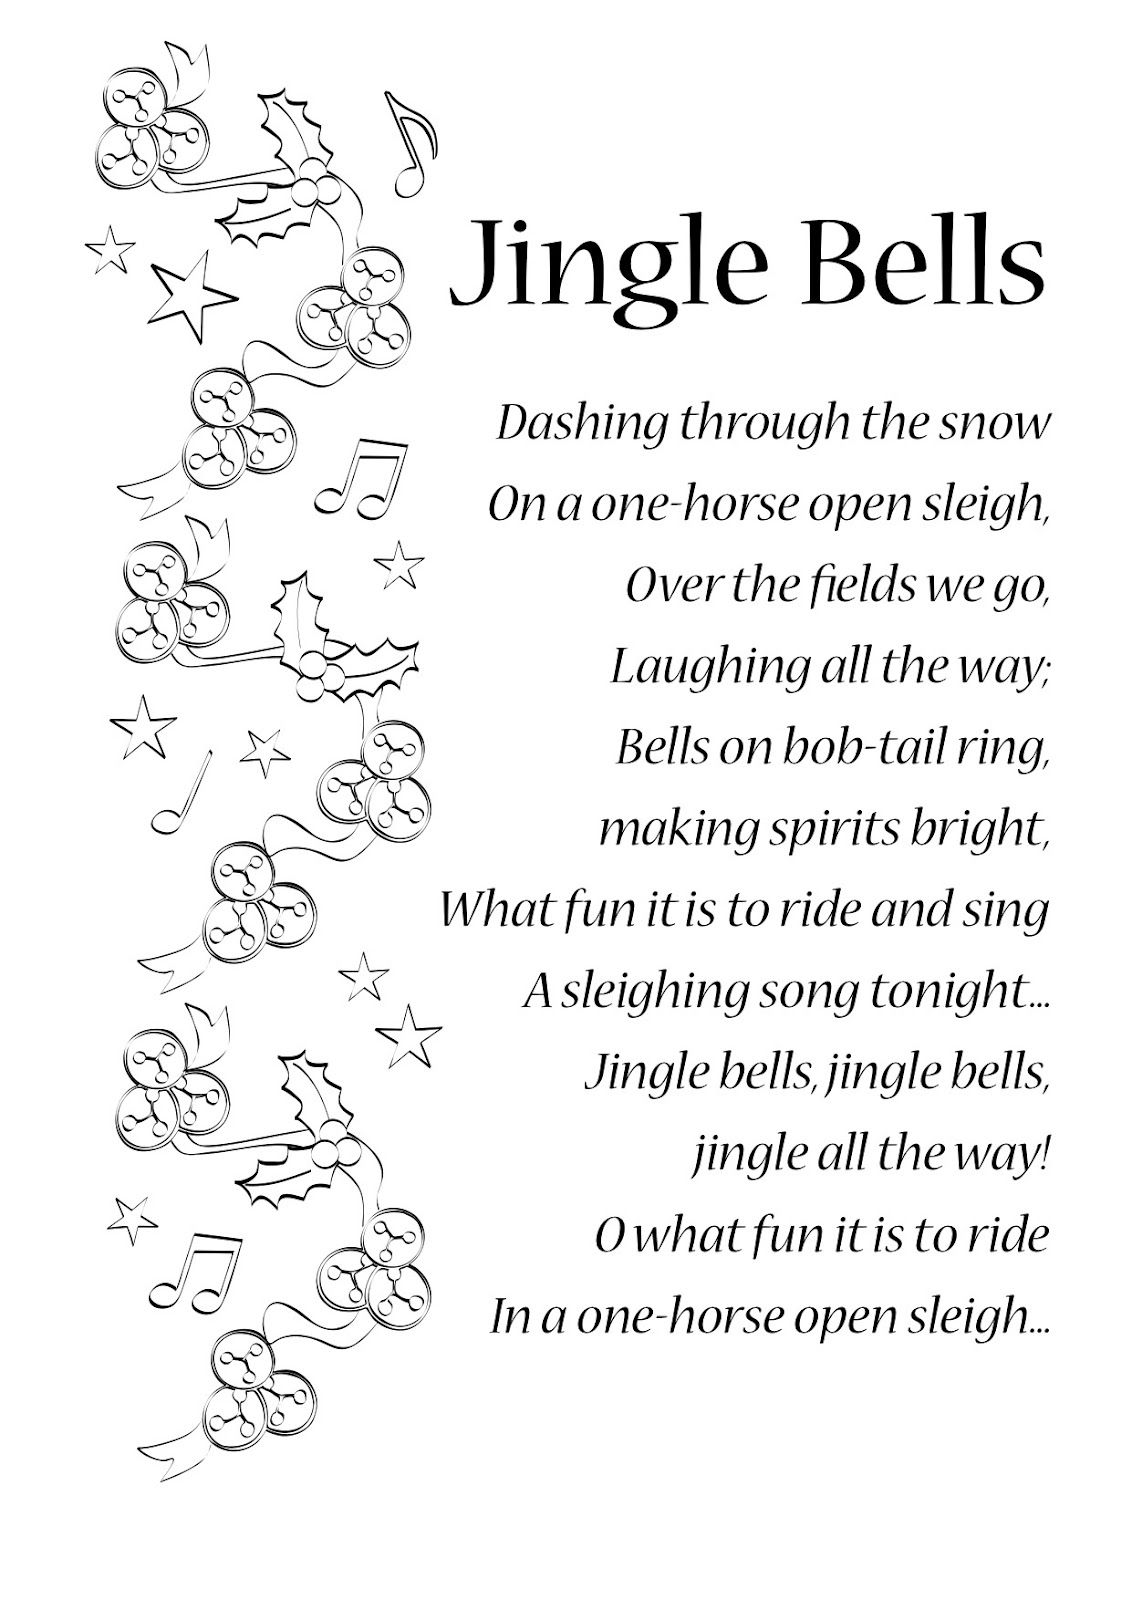 image relating to Jingle Bells Lyrics Printable referred to as lyrics towards jingle bells ENGLISH Audio AND RHYMES: LYRICS